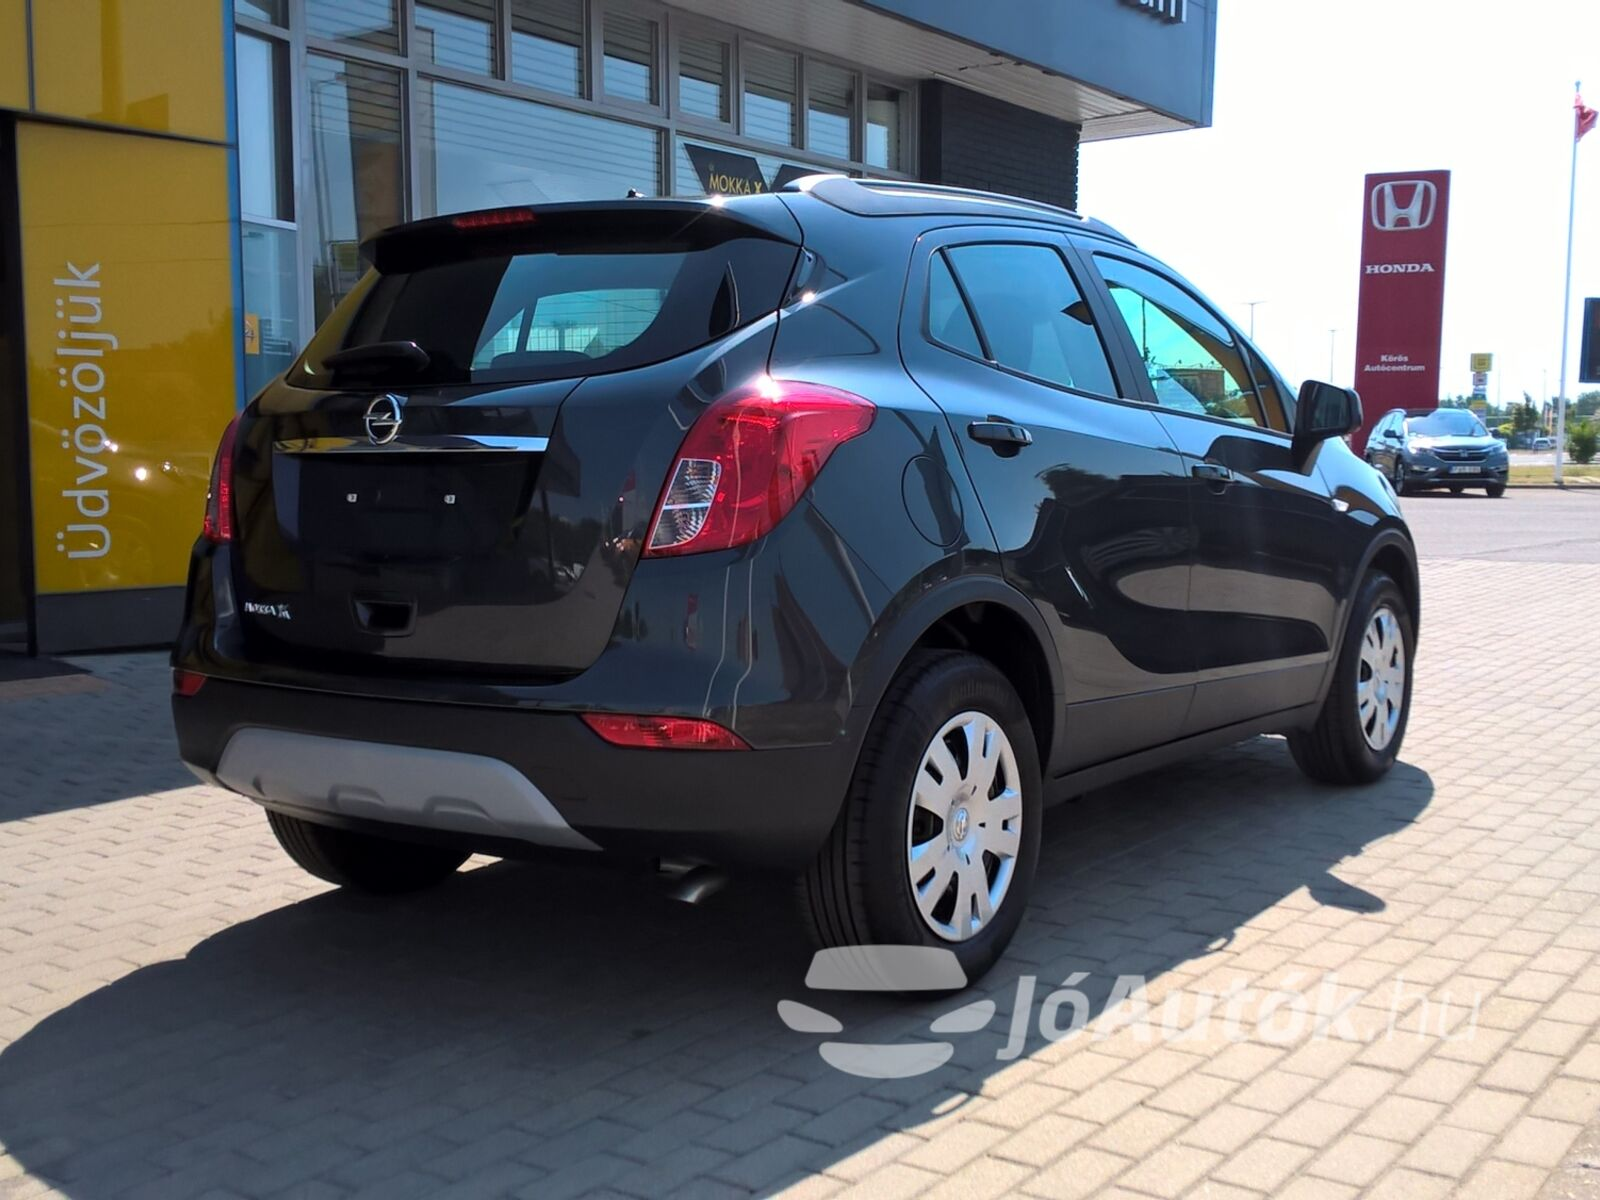 OPEL Mokka 1.6 Selection Start-Stop EURO6 - jobb hátulja